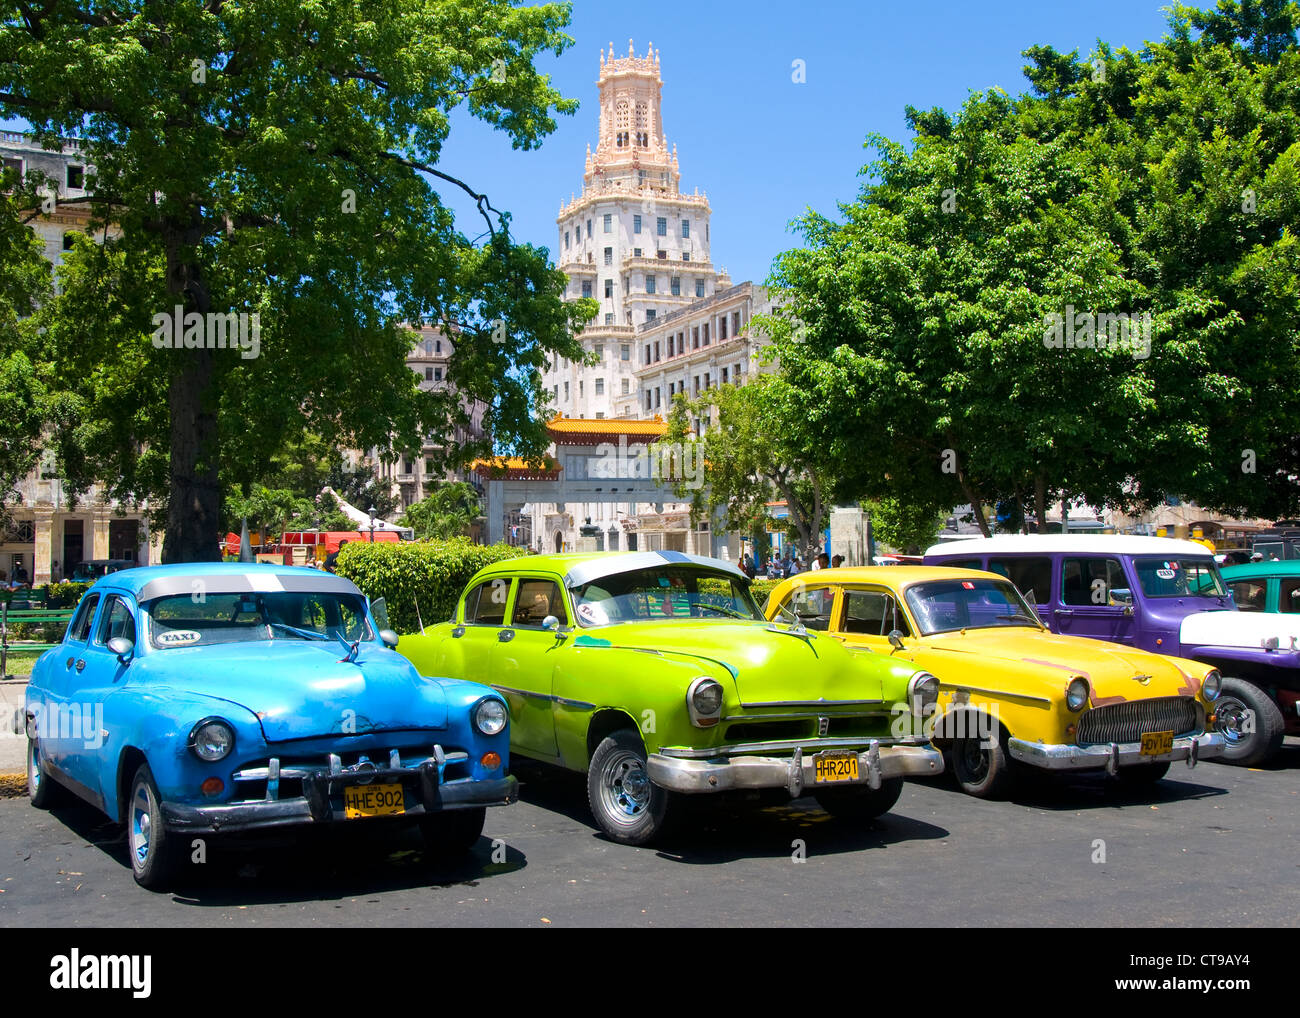 Voitures anciennes, Parque Central, La Havane, Cuba Photo Stock